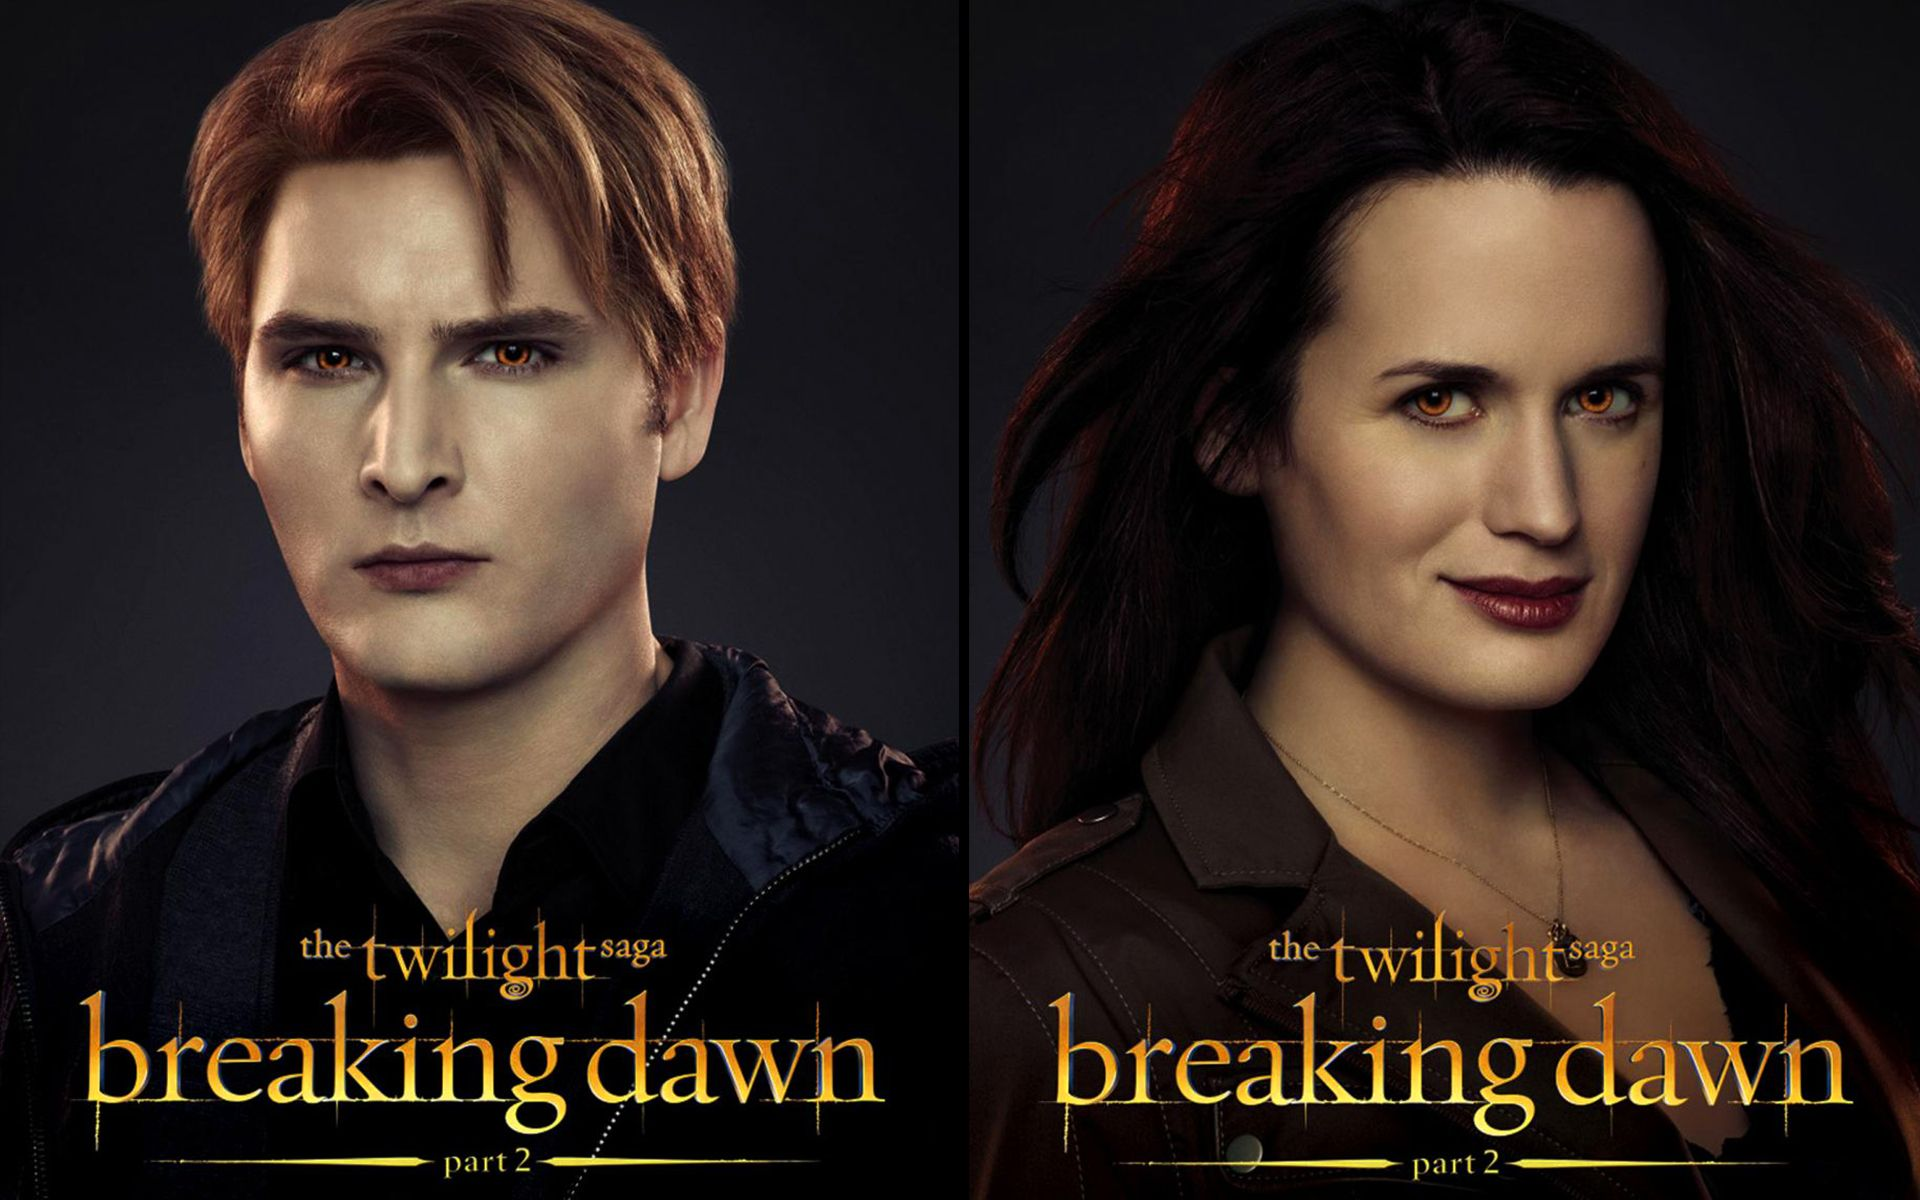 Twilight Breaking Dawn Part 2 High Quality Image